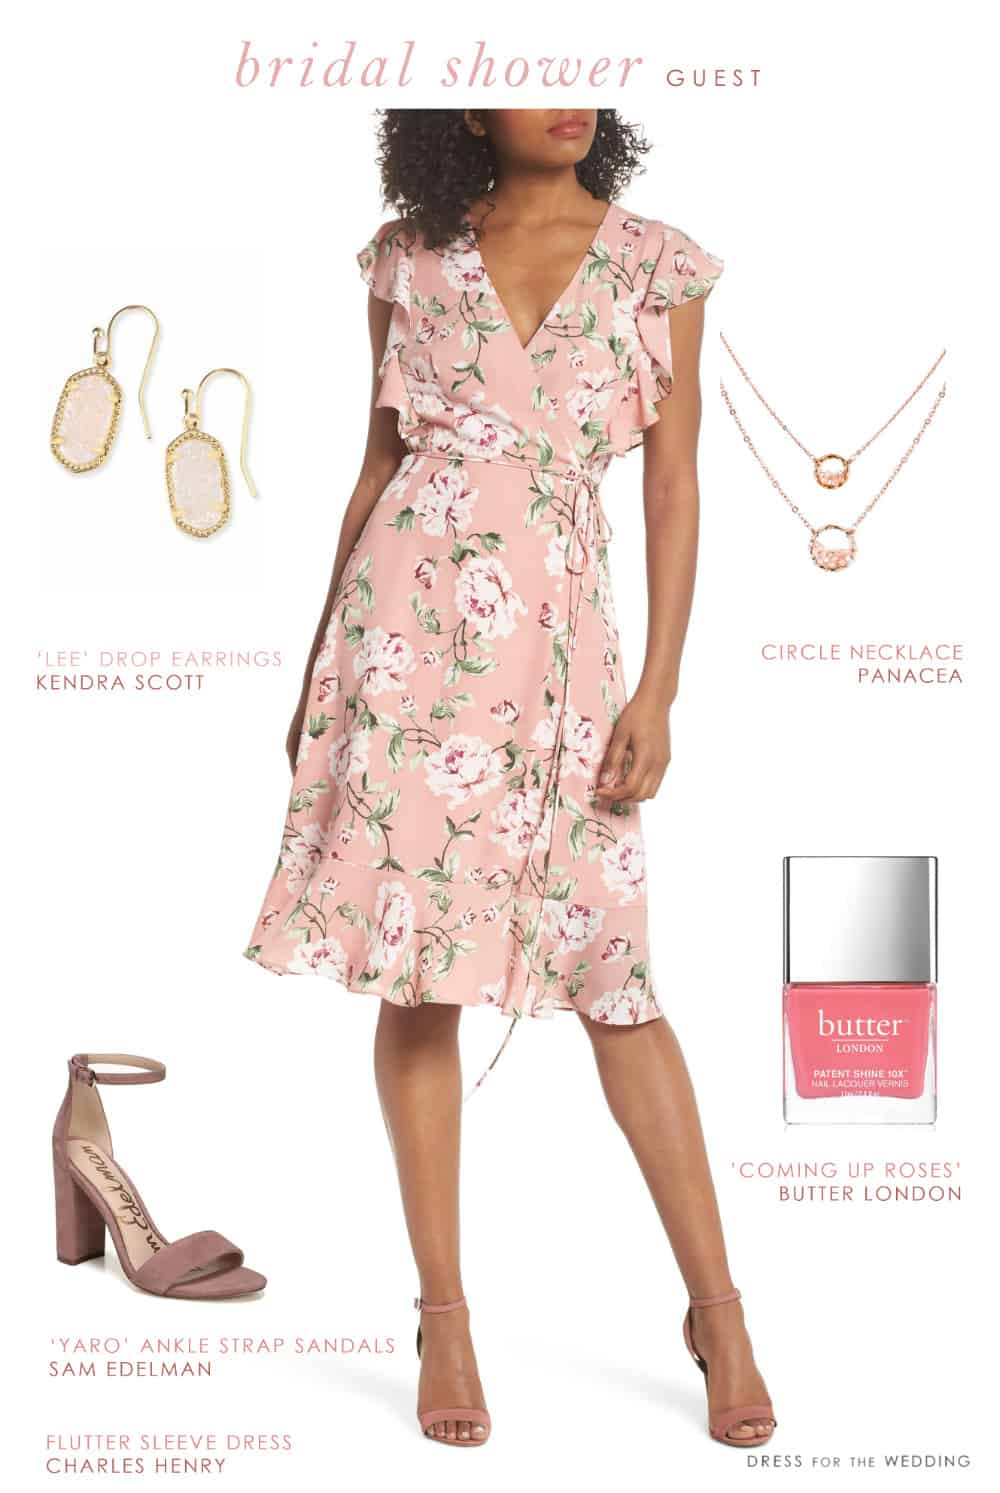 What Should You Wear To A Bridal Shower As A Guest Dress For The